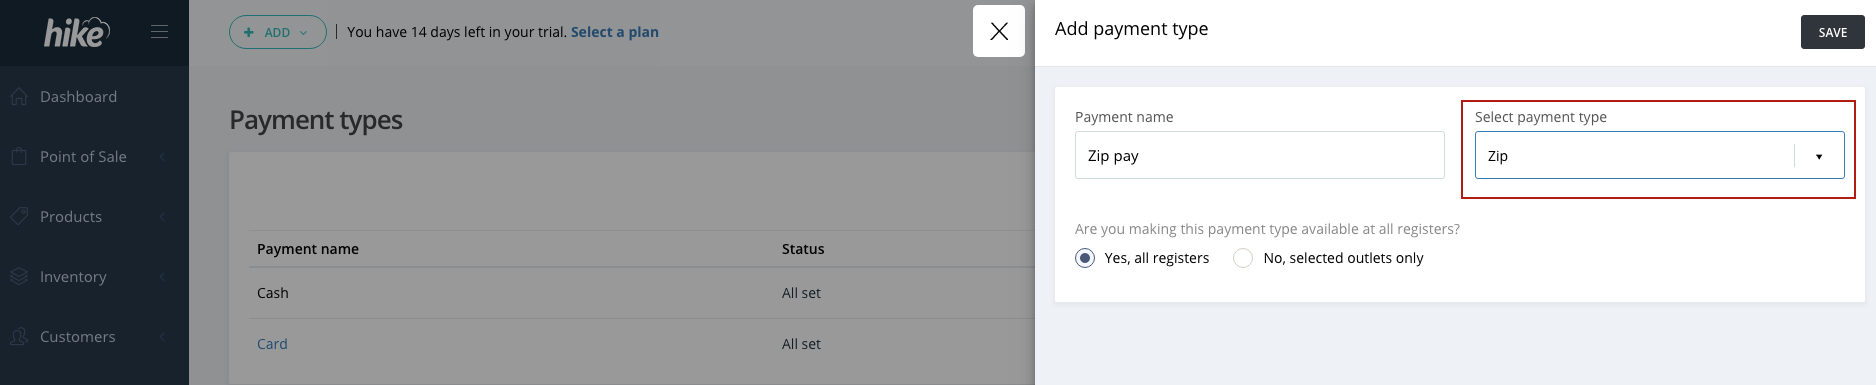 add_payment_type.png